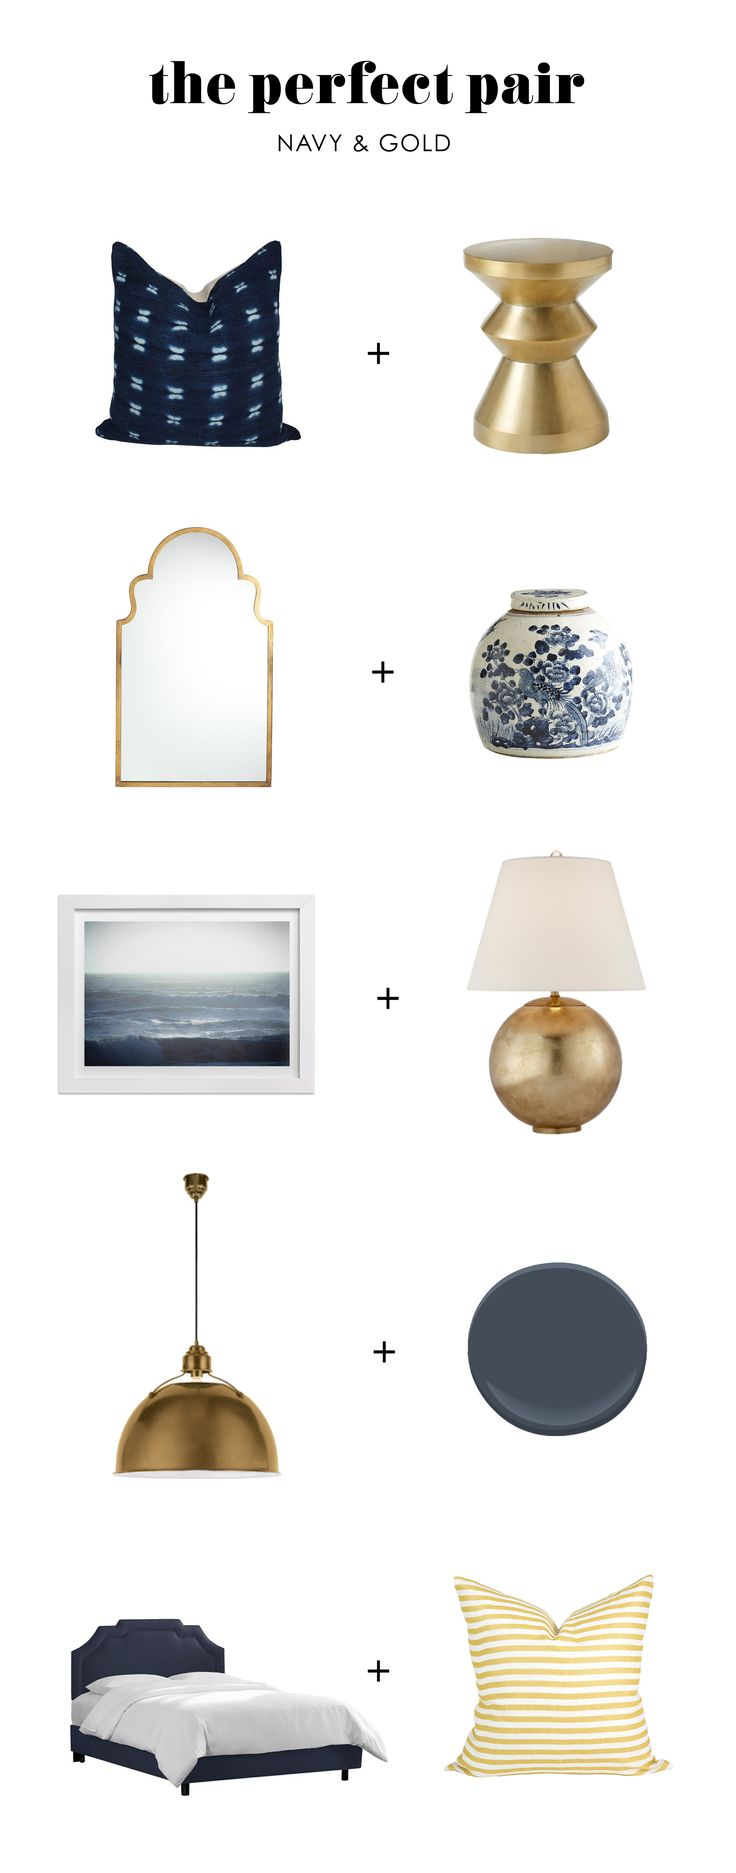 The Perfect Pair: Navy & Gold